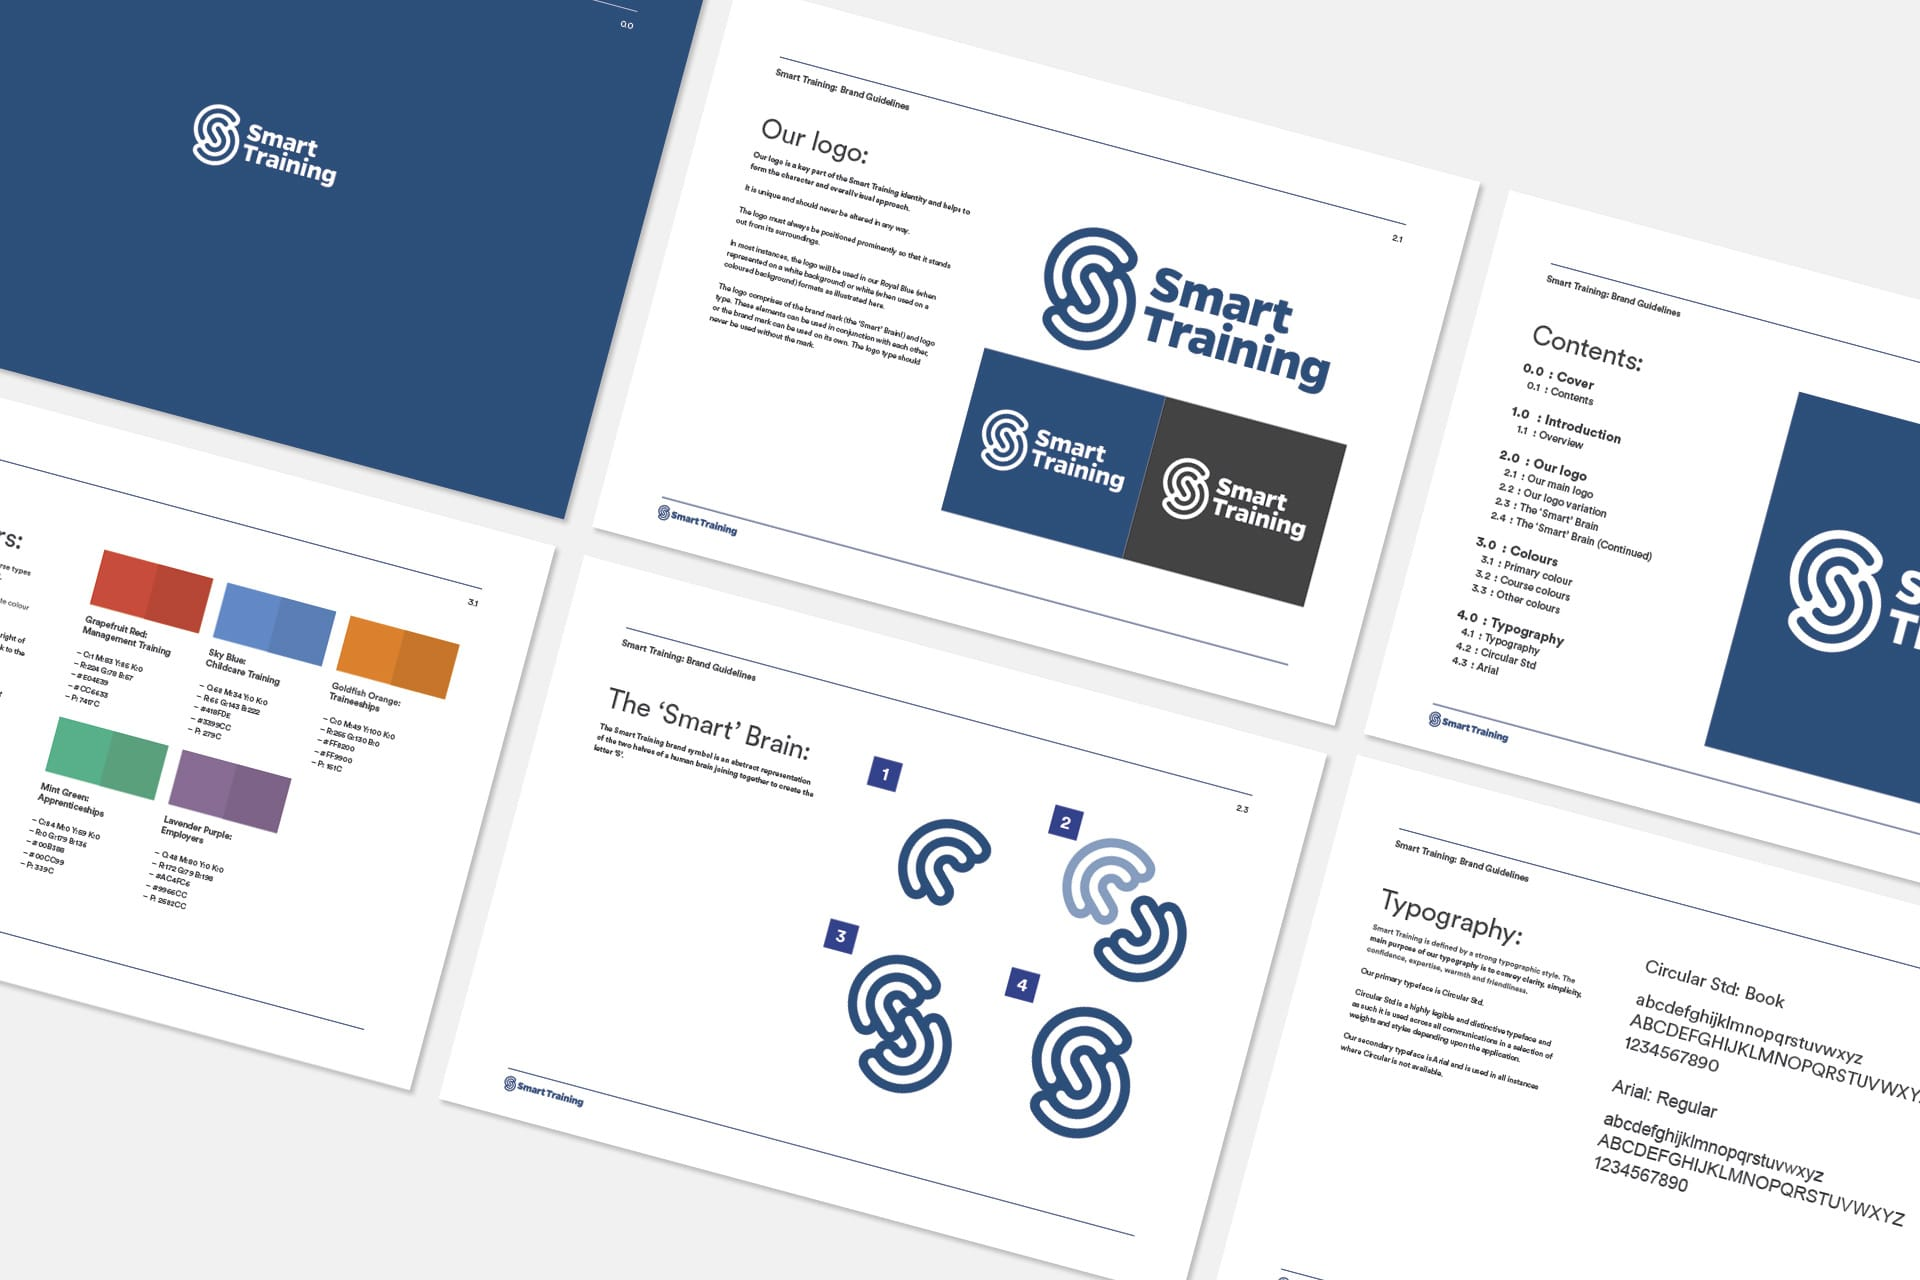 Smart Training: Branding & Website - Brand Guidelines